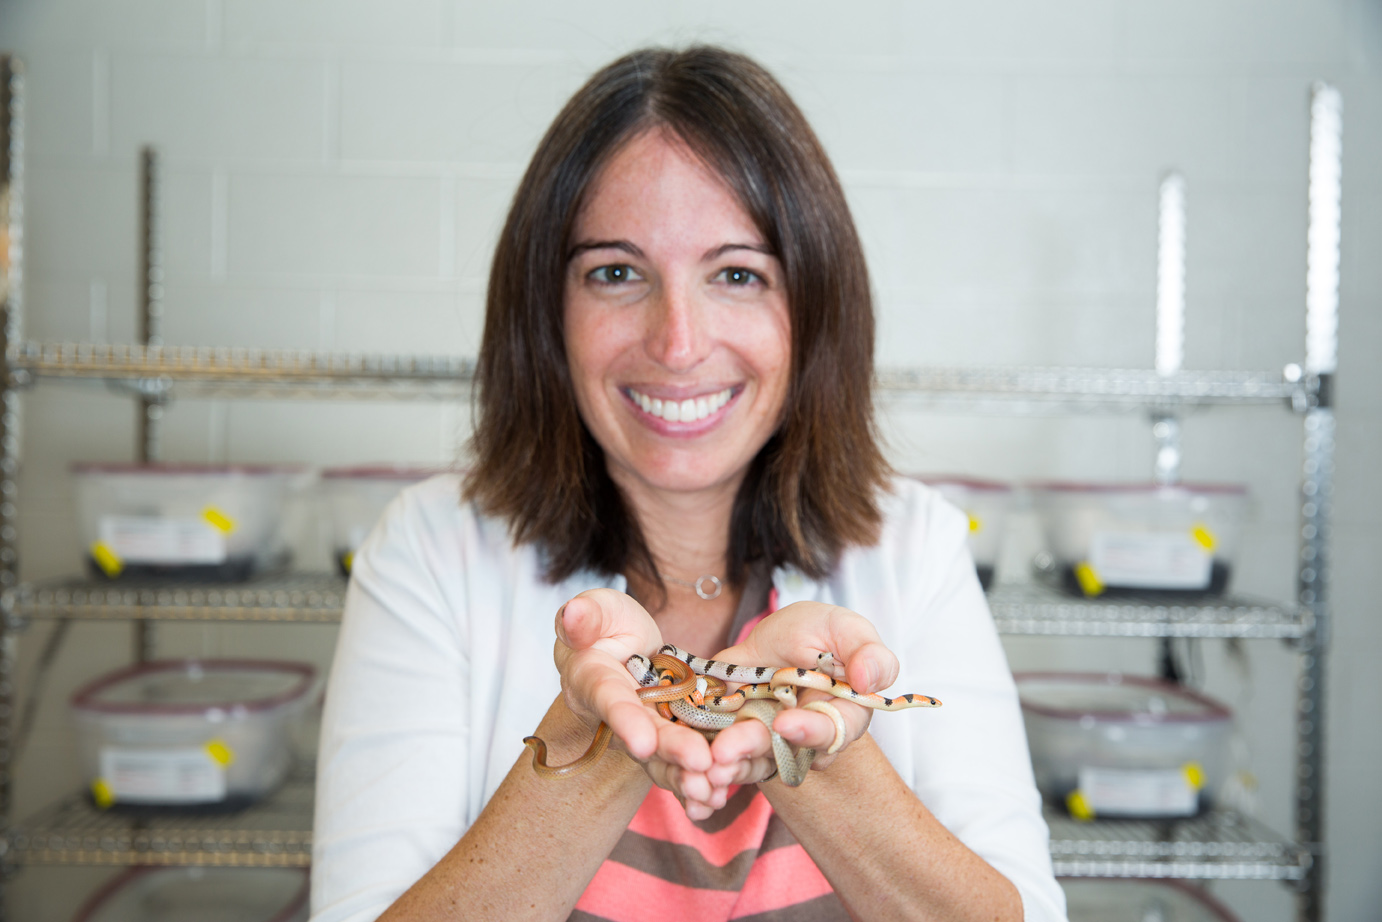 U-M evolutionary biologist Alison Davis Rabosky with a handful of ground snakes. The non-venomous snakes are common in the central and western United States, as well as in Mexico. Image credit: Eric Bronson, Michigan Photography